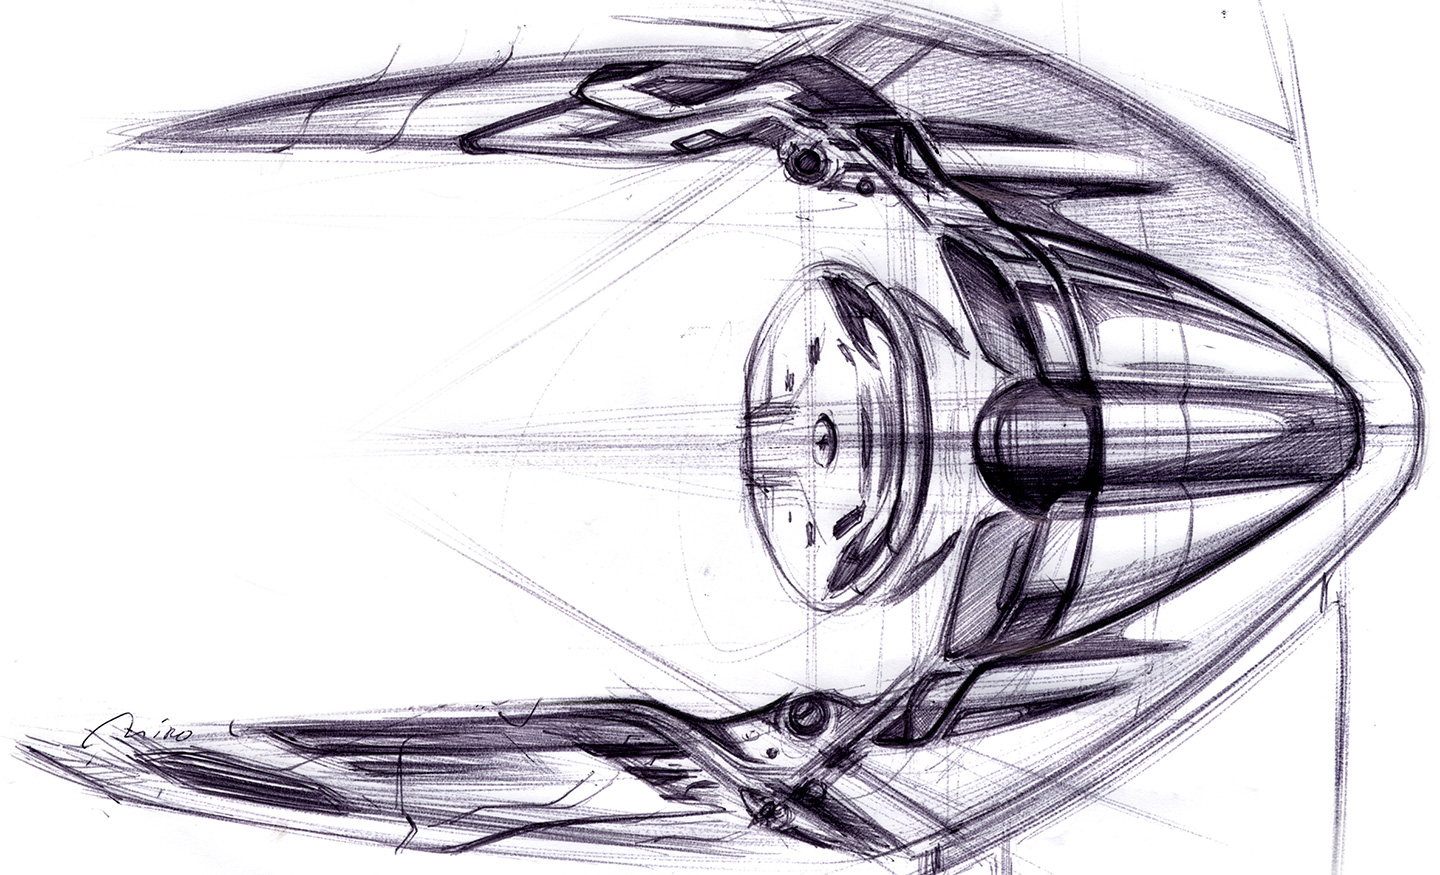 Ferrari 458 Interior Design Sketch By Miroslav Dimitrov